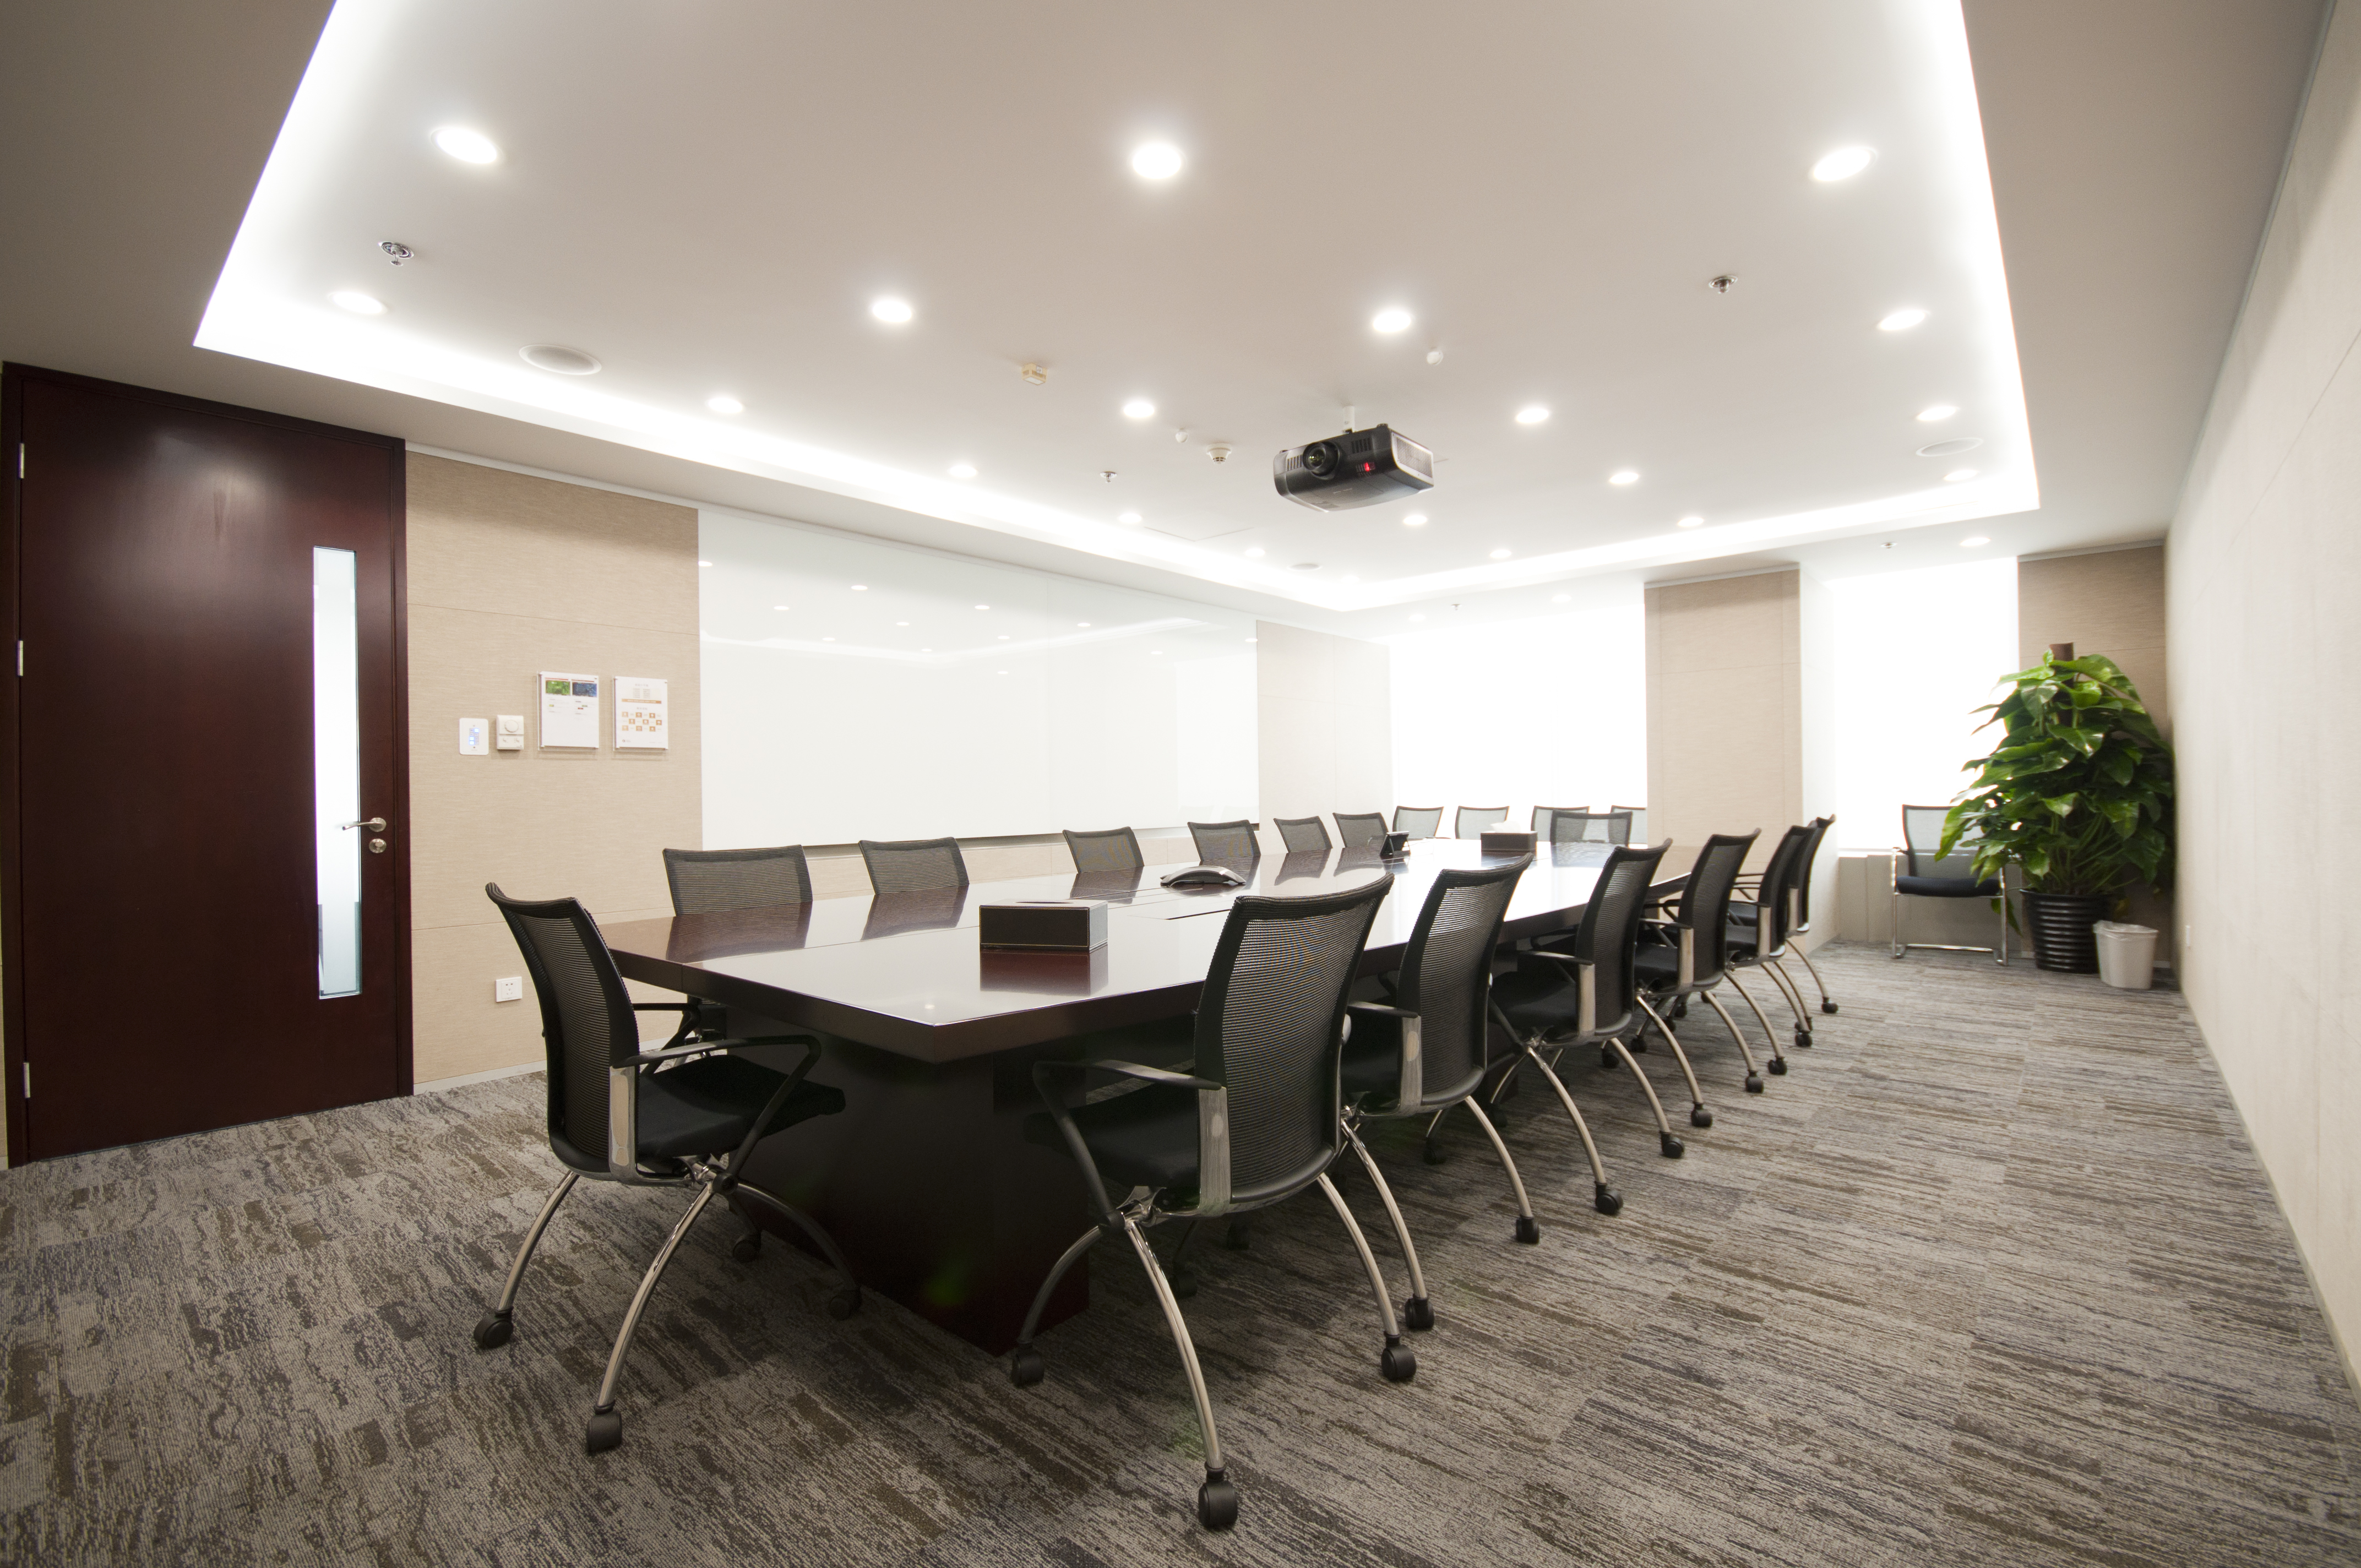 Modern office interior,Meeting room